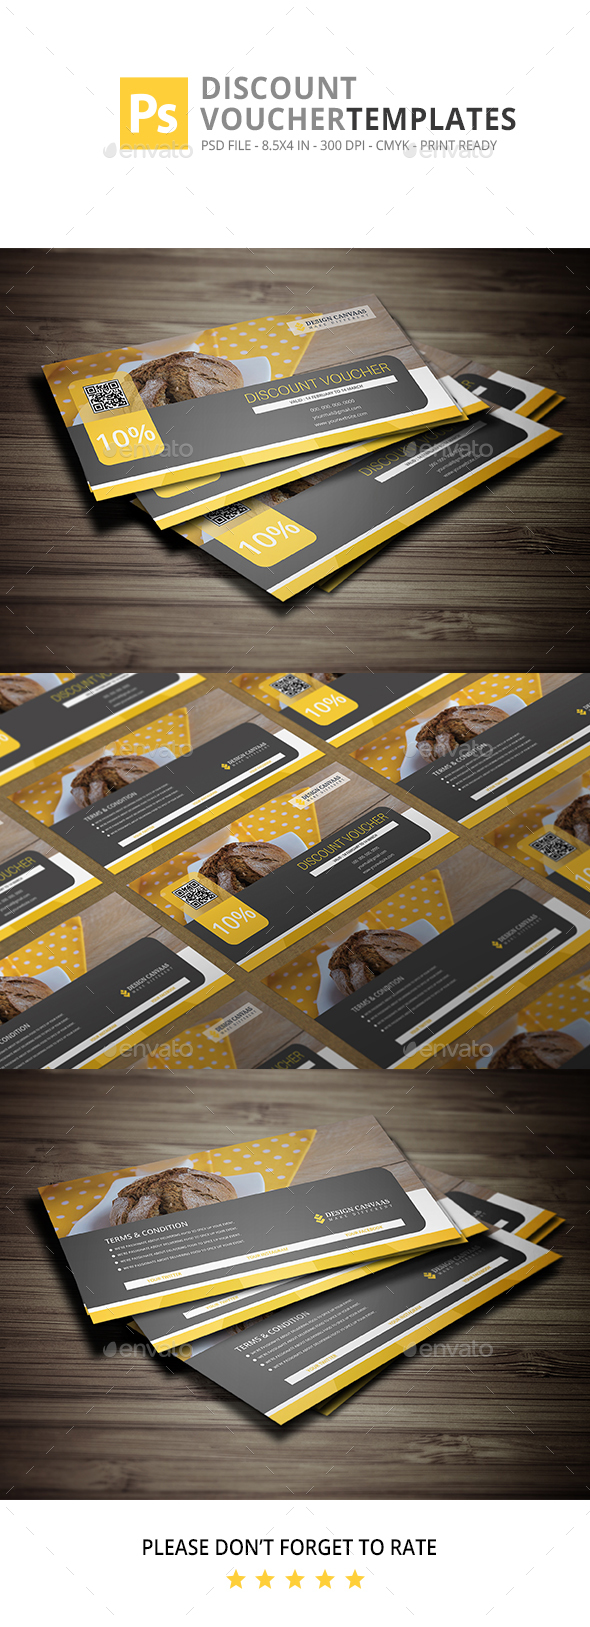 Voucher Discount Graphics, Designs & Templates from GraphicRiver